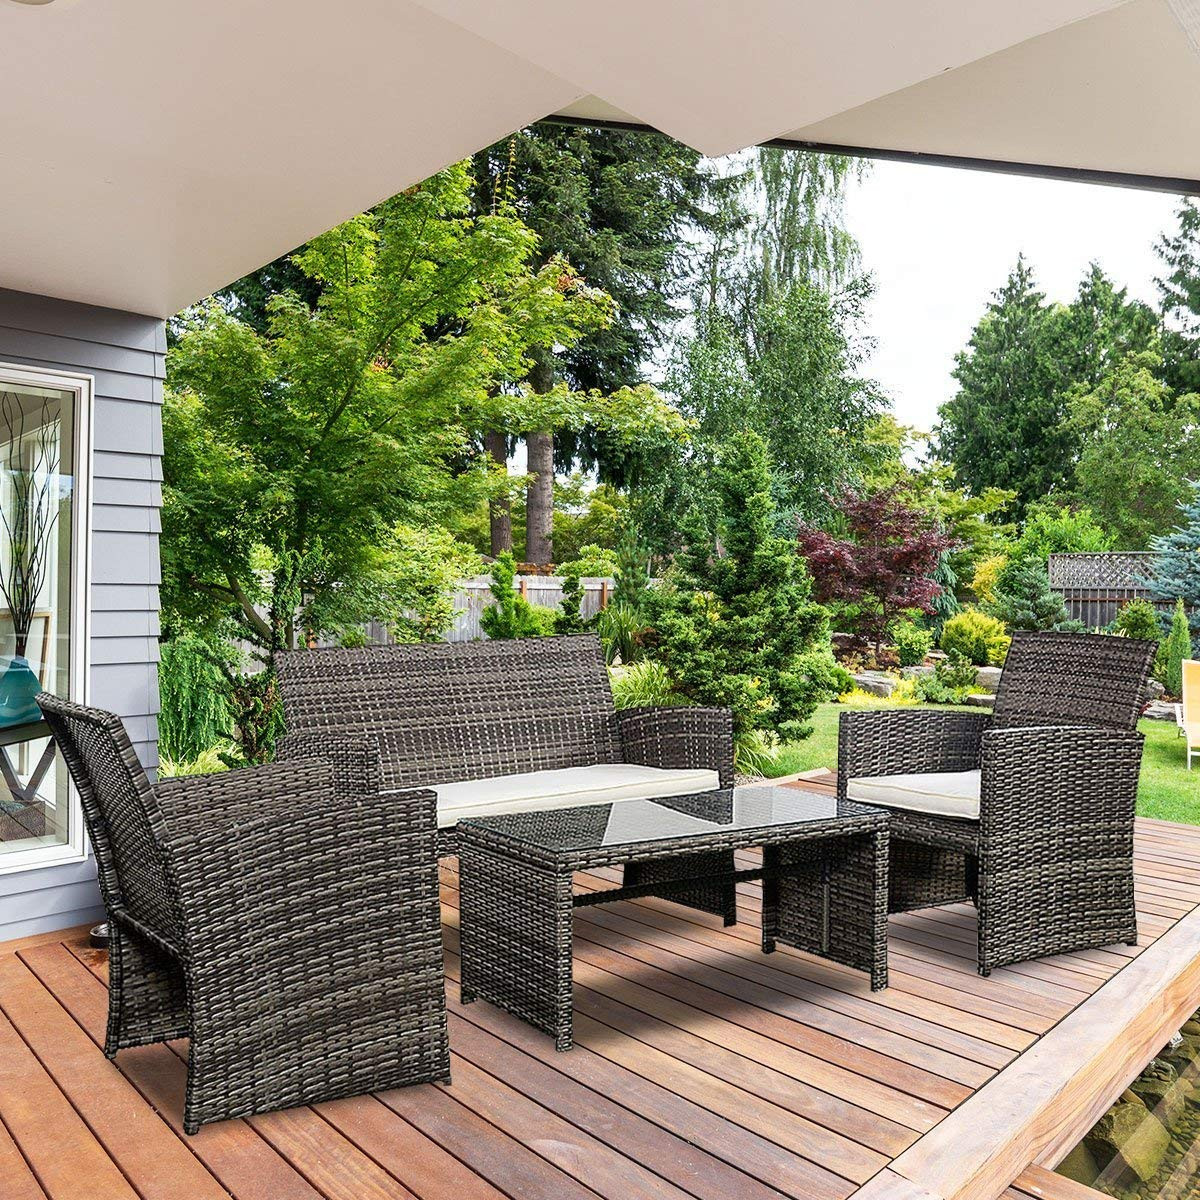 Best ideas about Patio Furniture Deals . Save or Pin Black Friday Patio Furniture Deals Best Buy Now.